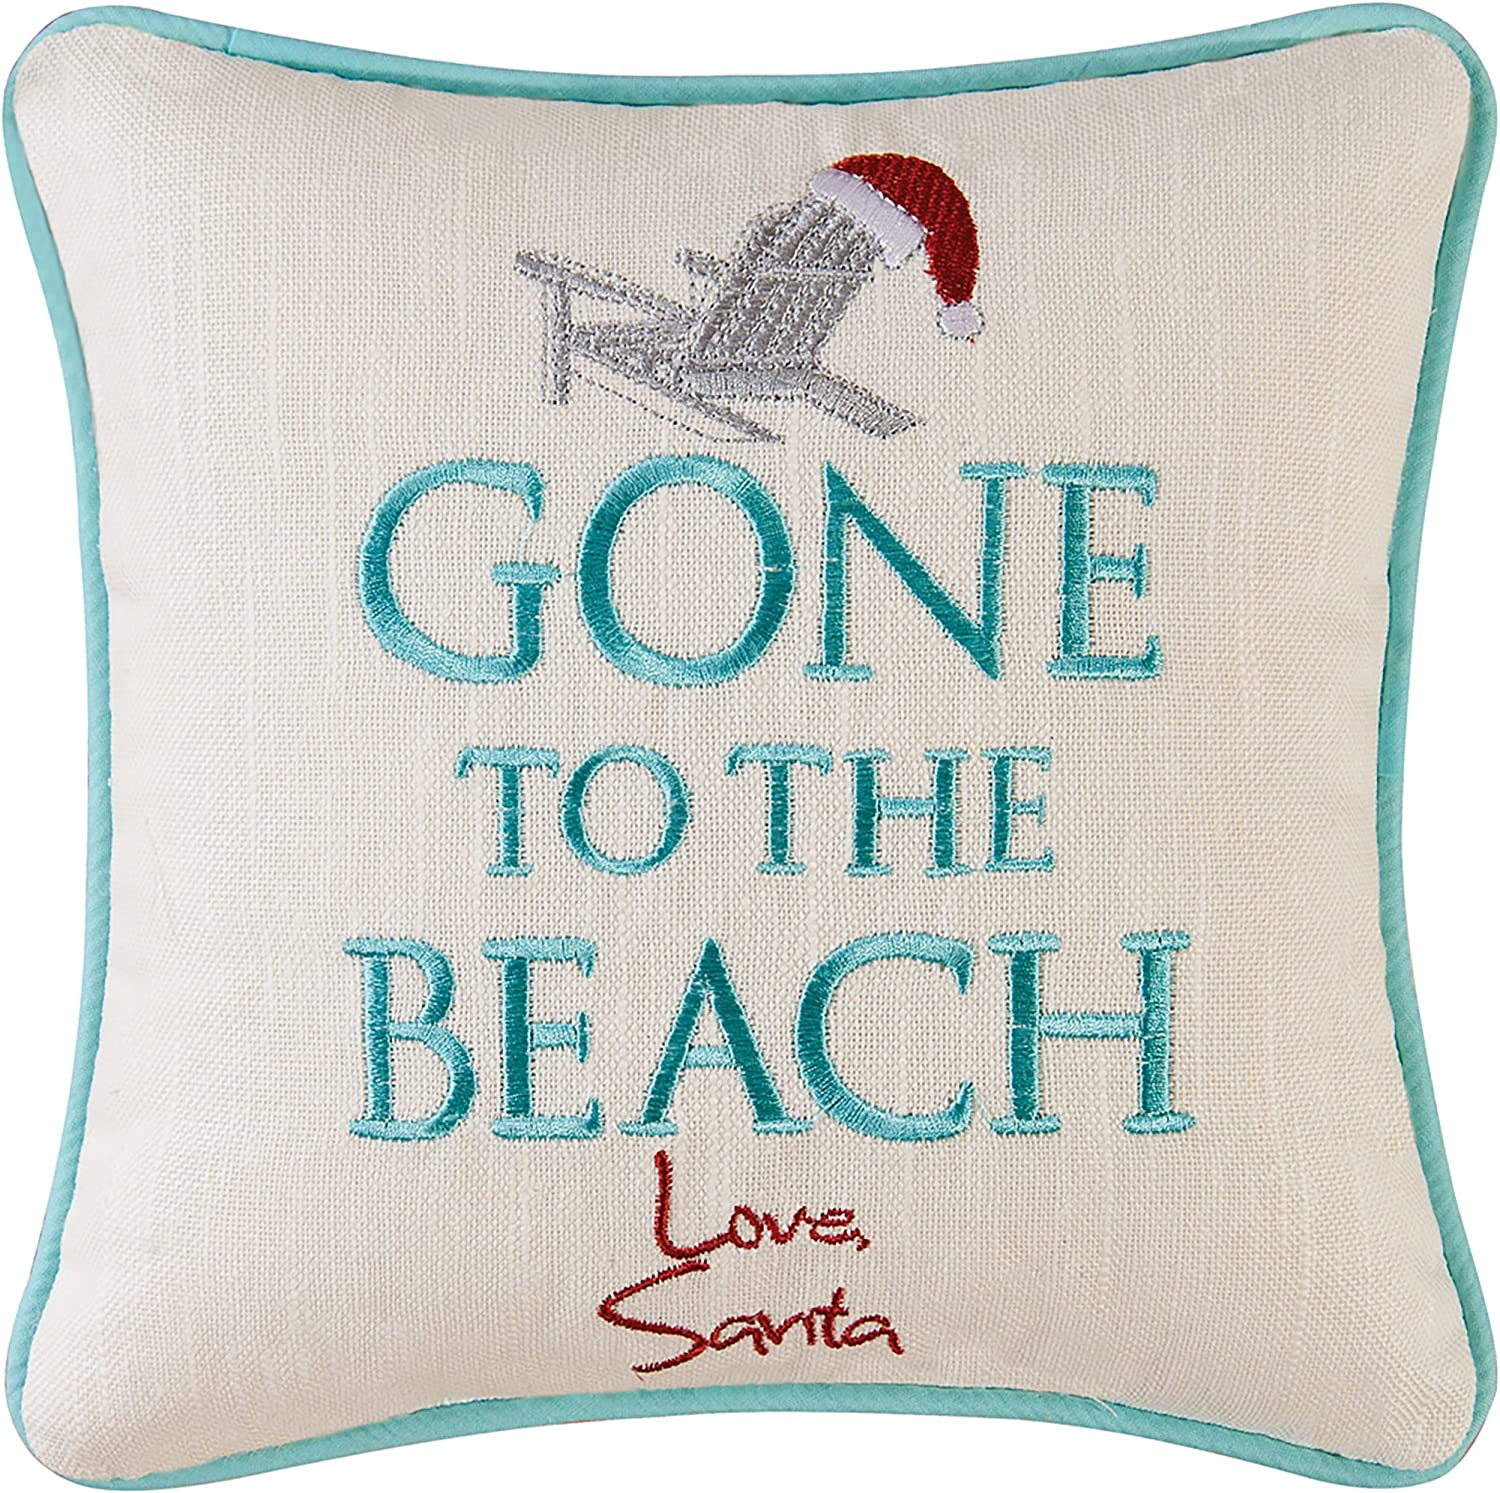 C F Home Gone To The Beach Love Santa Coastal Holiday Embroidered Saying Decorative Accent Pillow 10 X 10 Multi Home Kitchen